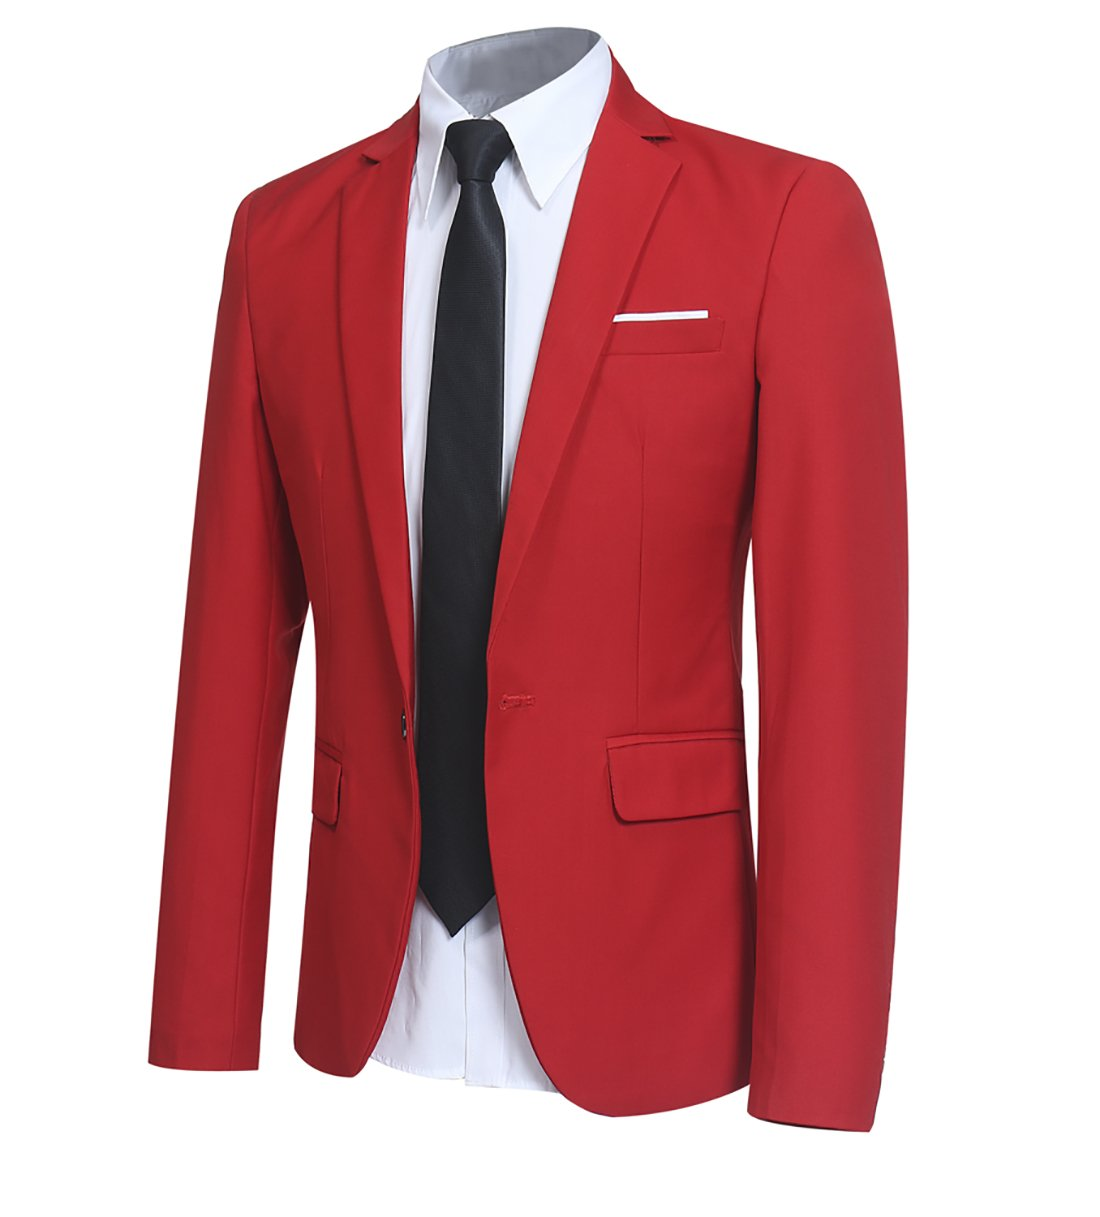 Men' Slim Fit One Button Blazer Jacket Casual/Party Sport Coat (Red, X-Large)